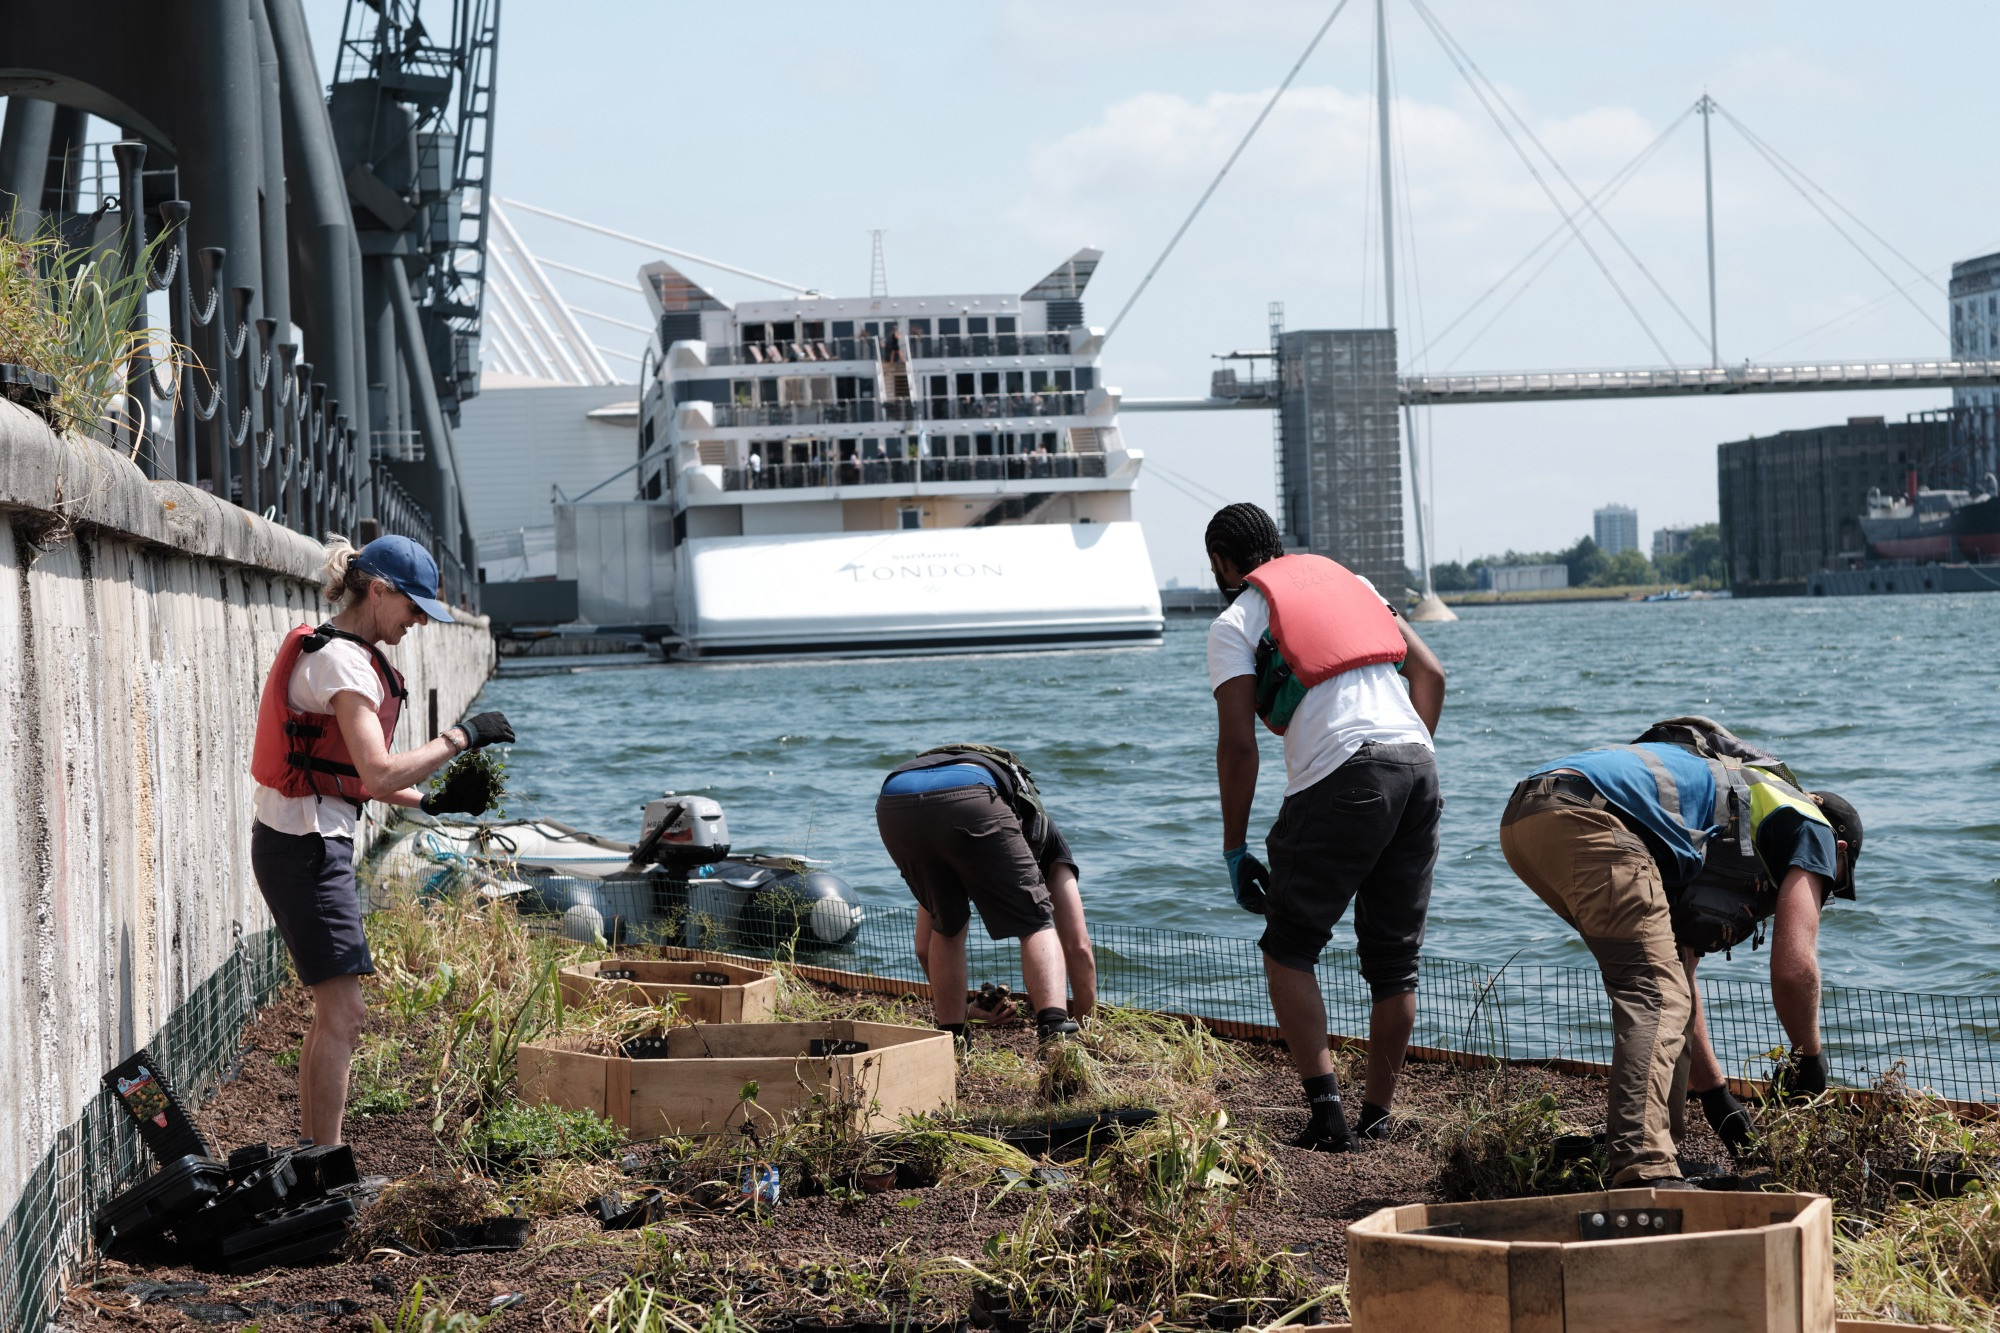 Royal Docks floating garden volunteers at work with Sunborn yacht in the background